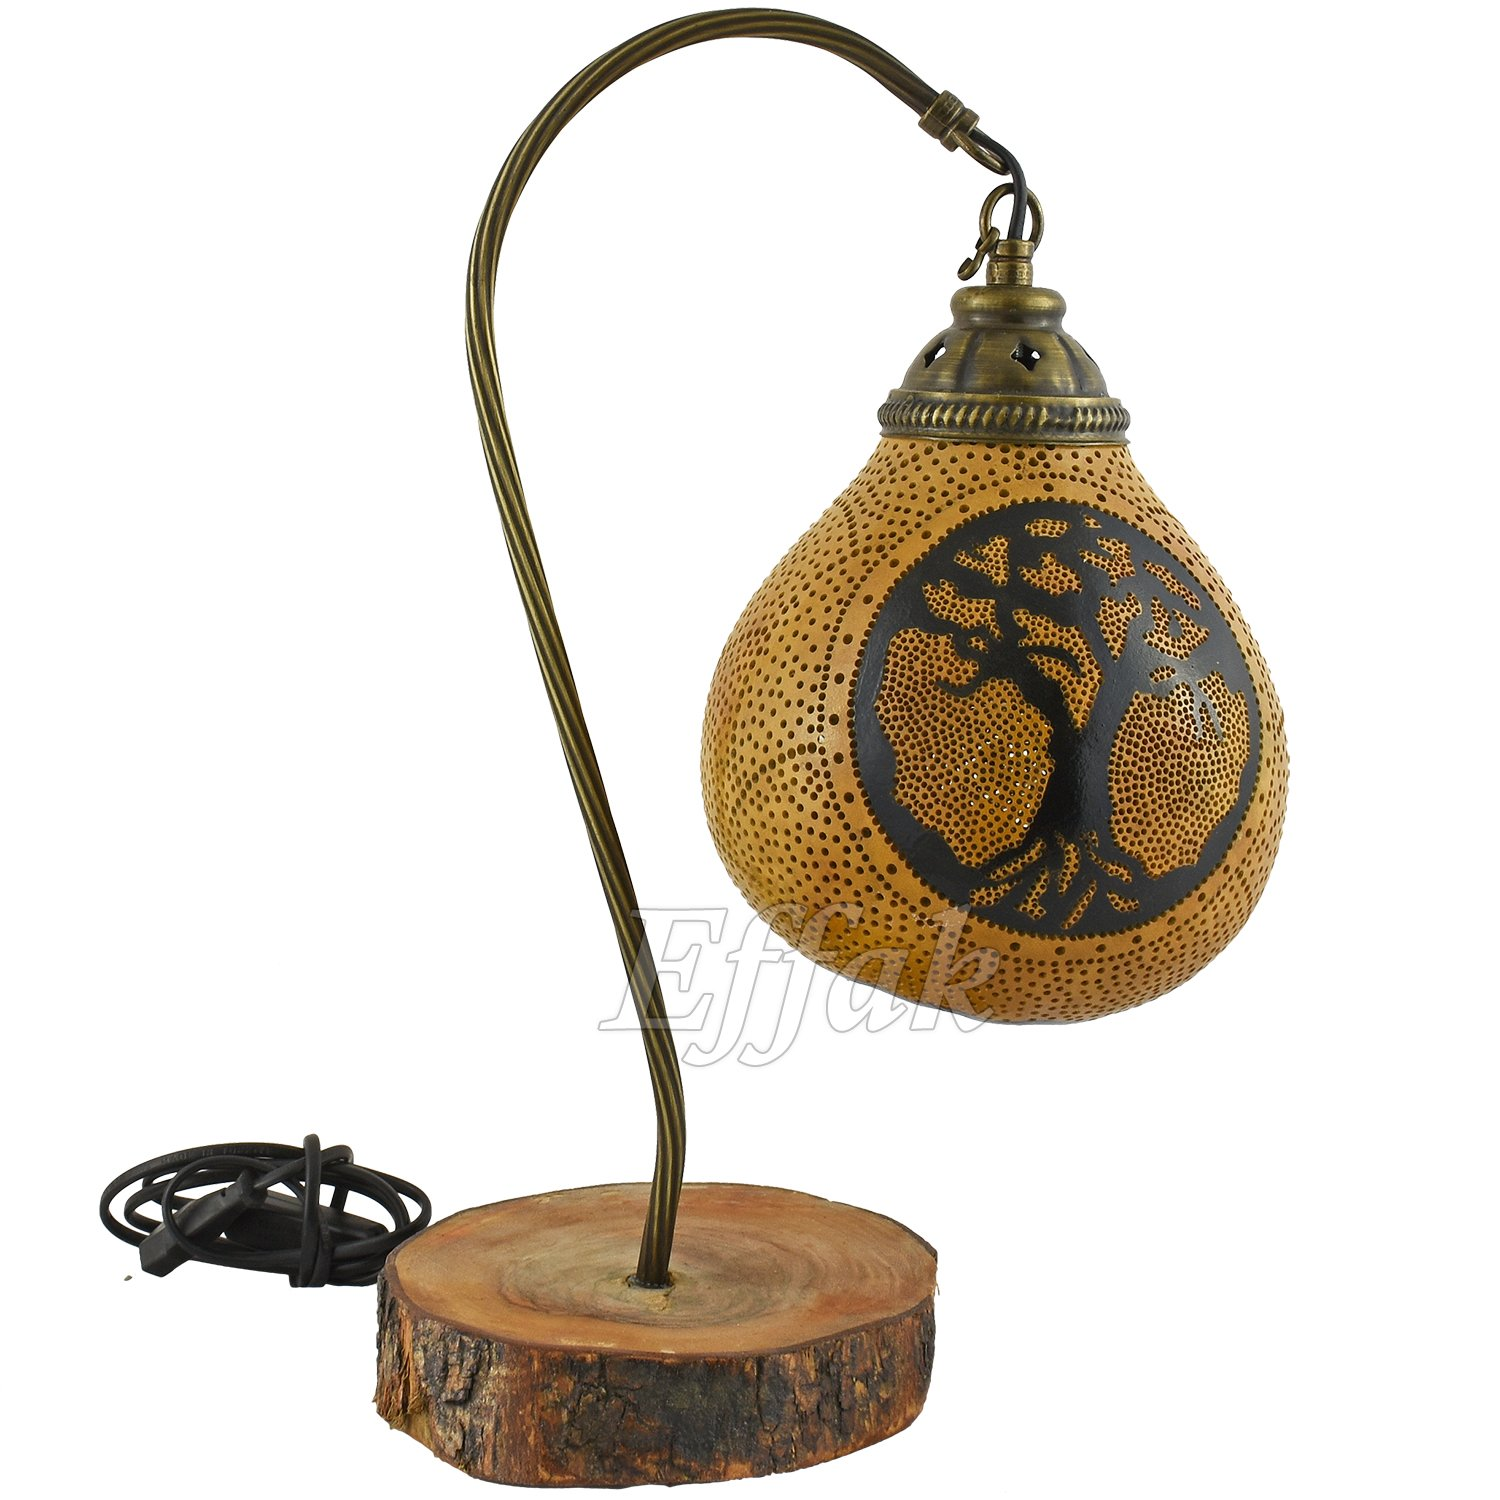 desk lamps calabarte exotic lights turkish gourd lanterns fairy light bohemian home decor moroccan furniture krbis lampen amazoncom - Krbis Tischlampen